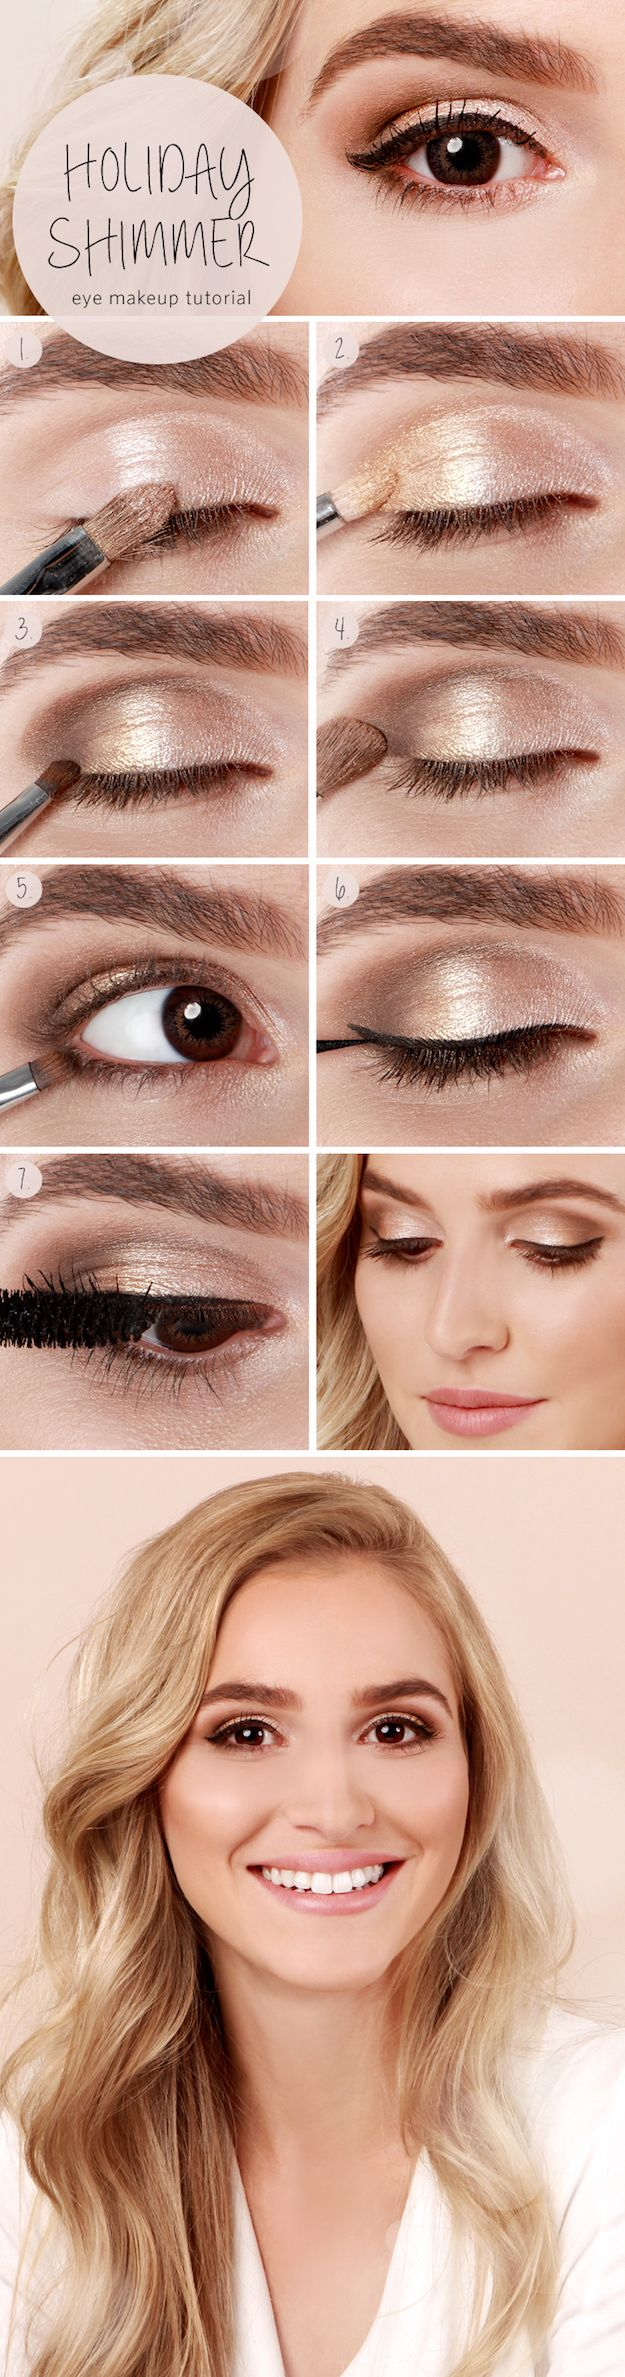 31 Makeup Tutorials for Brown Eyes - Holiday Shimmer Eye Tutorial -Great Step by...